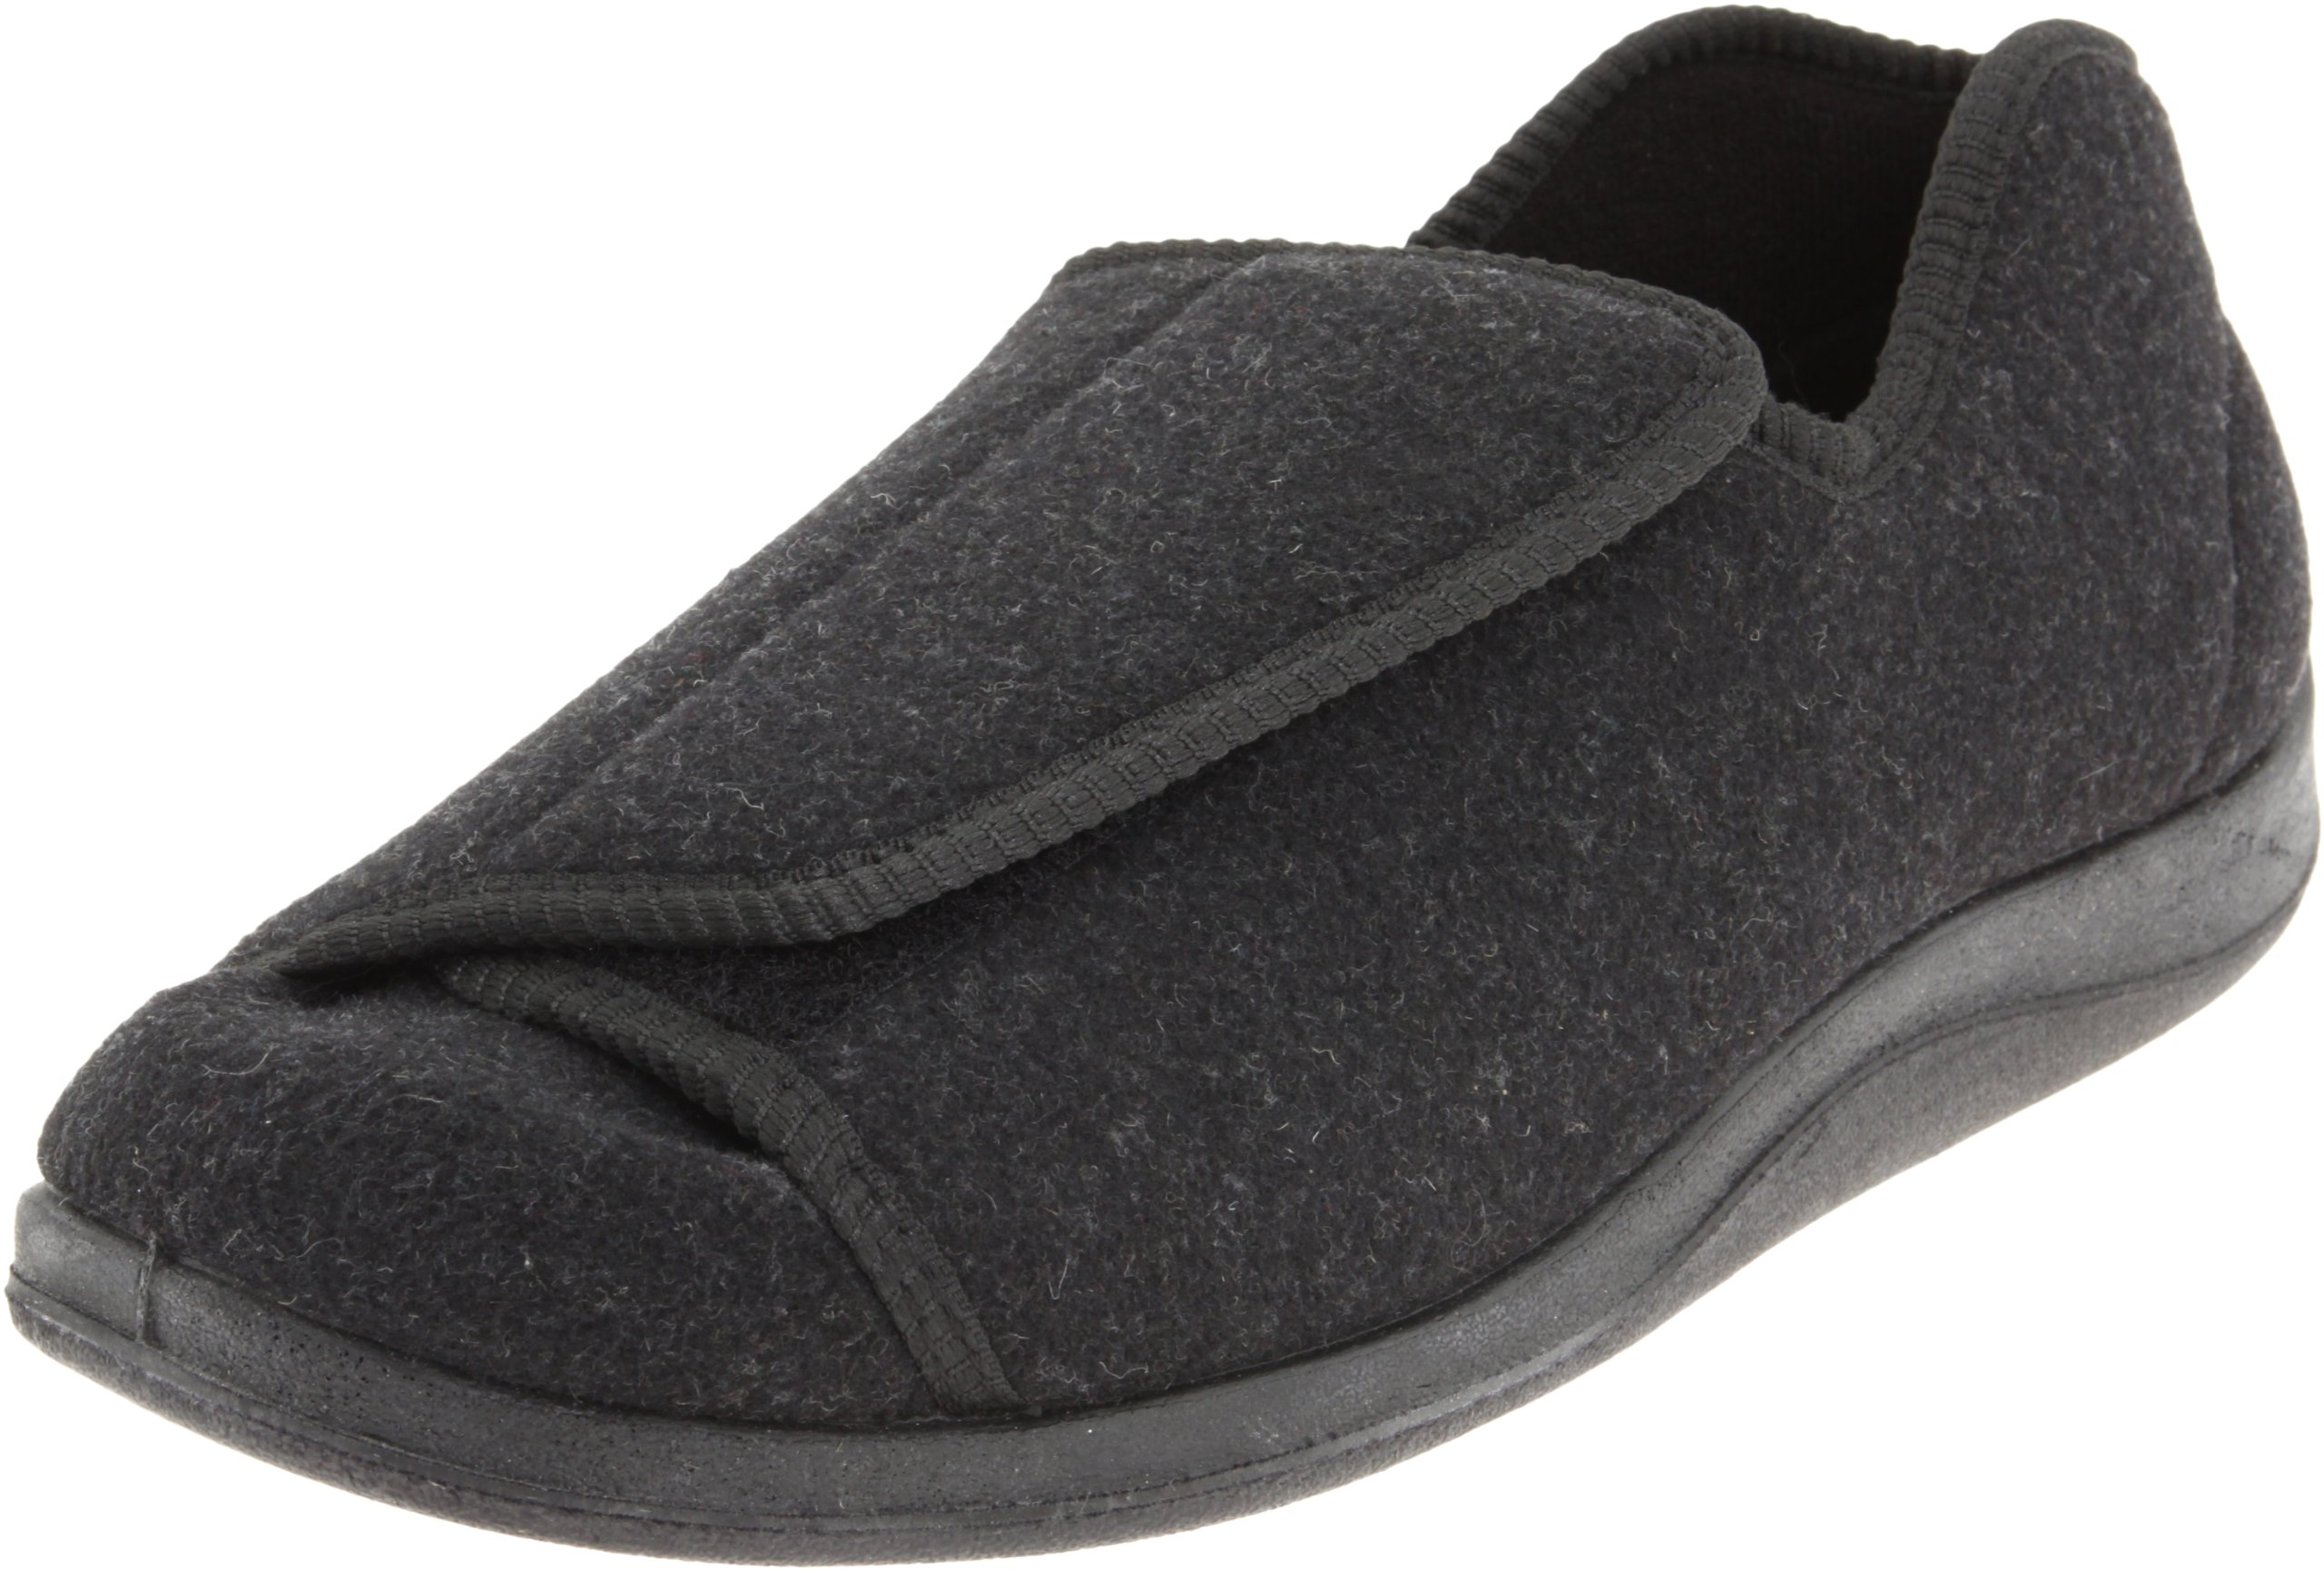 Foamtreads Men's Doctor, Charcoal Wool, 14 W US